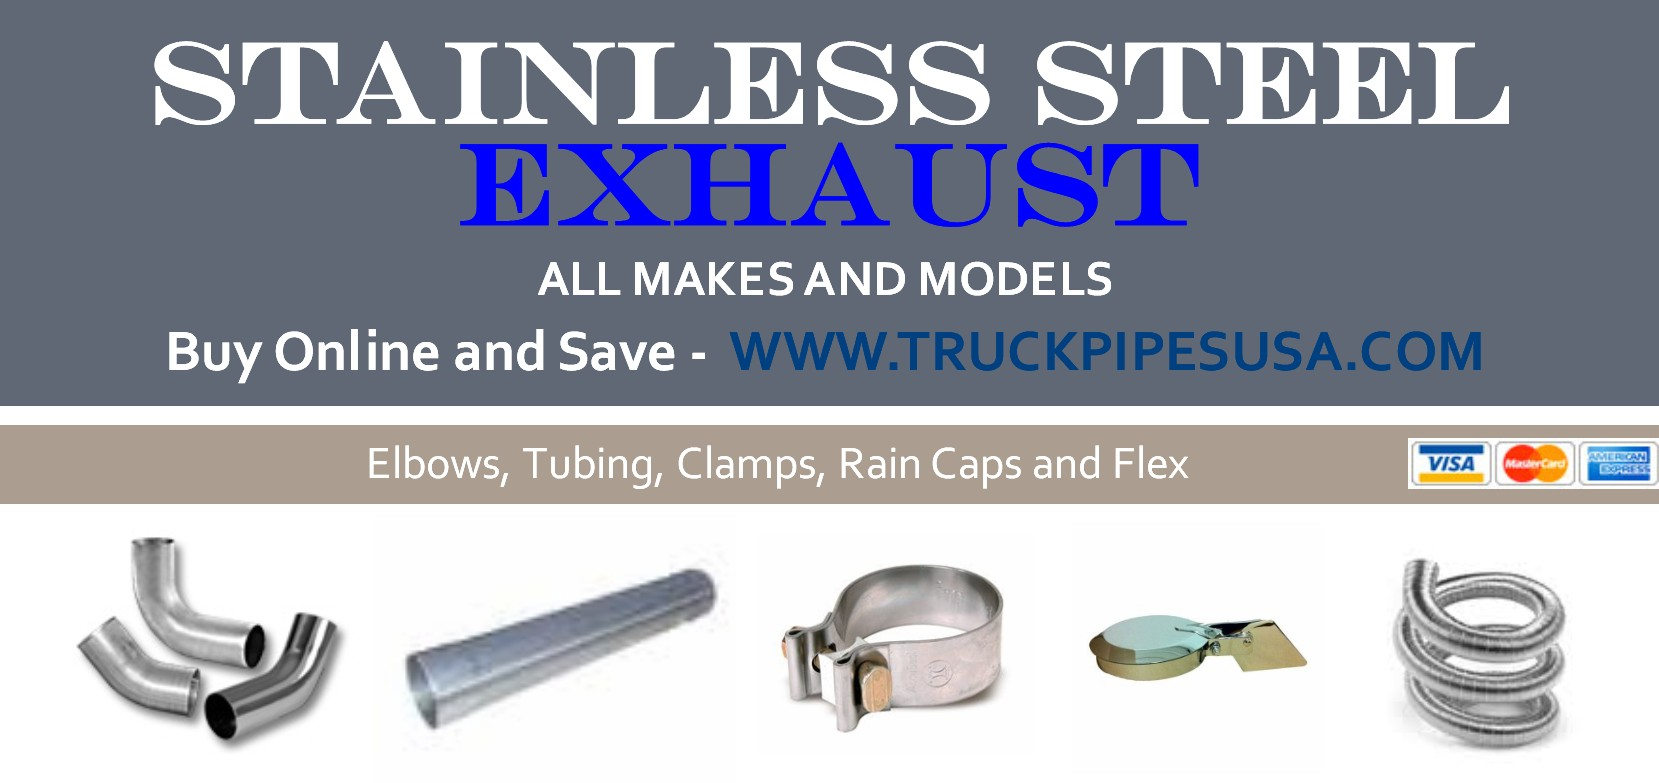 stainless-steel-exhaust-pipes-for-big-rig-trucks-from-truckpipesusa.jpg